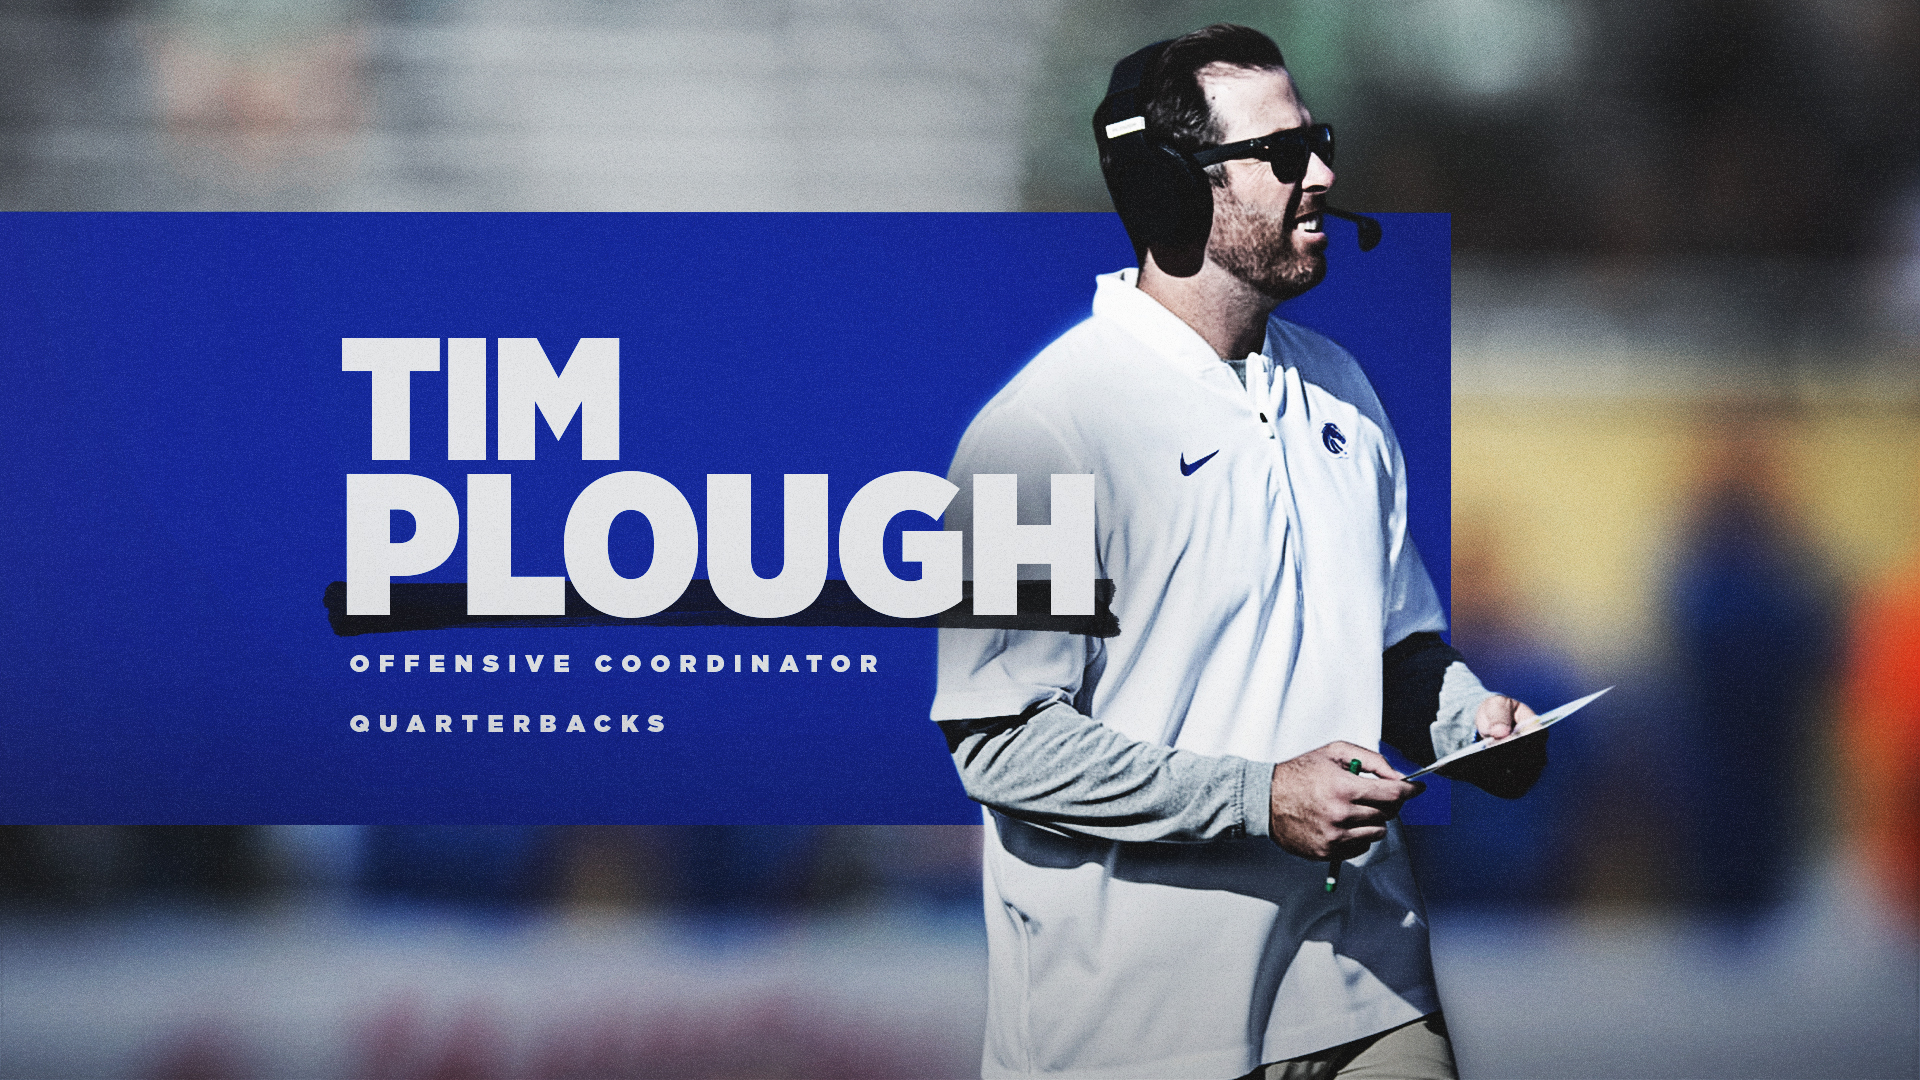 BOISE STATE FOOTBALL: OFFENSIVE COORDINATOR TIM PLOUGH ON QBS AND THEIR SUMMER EXPECTATIONS